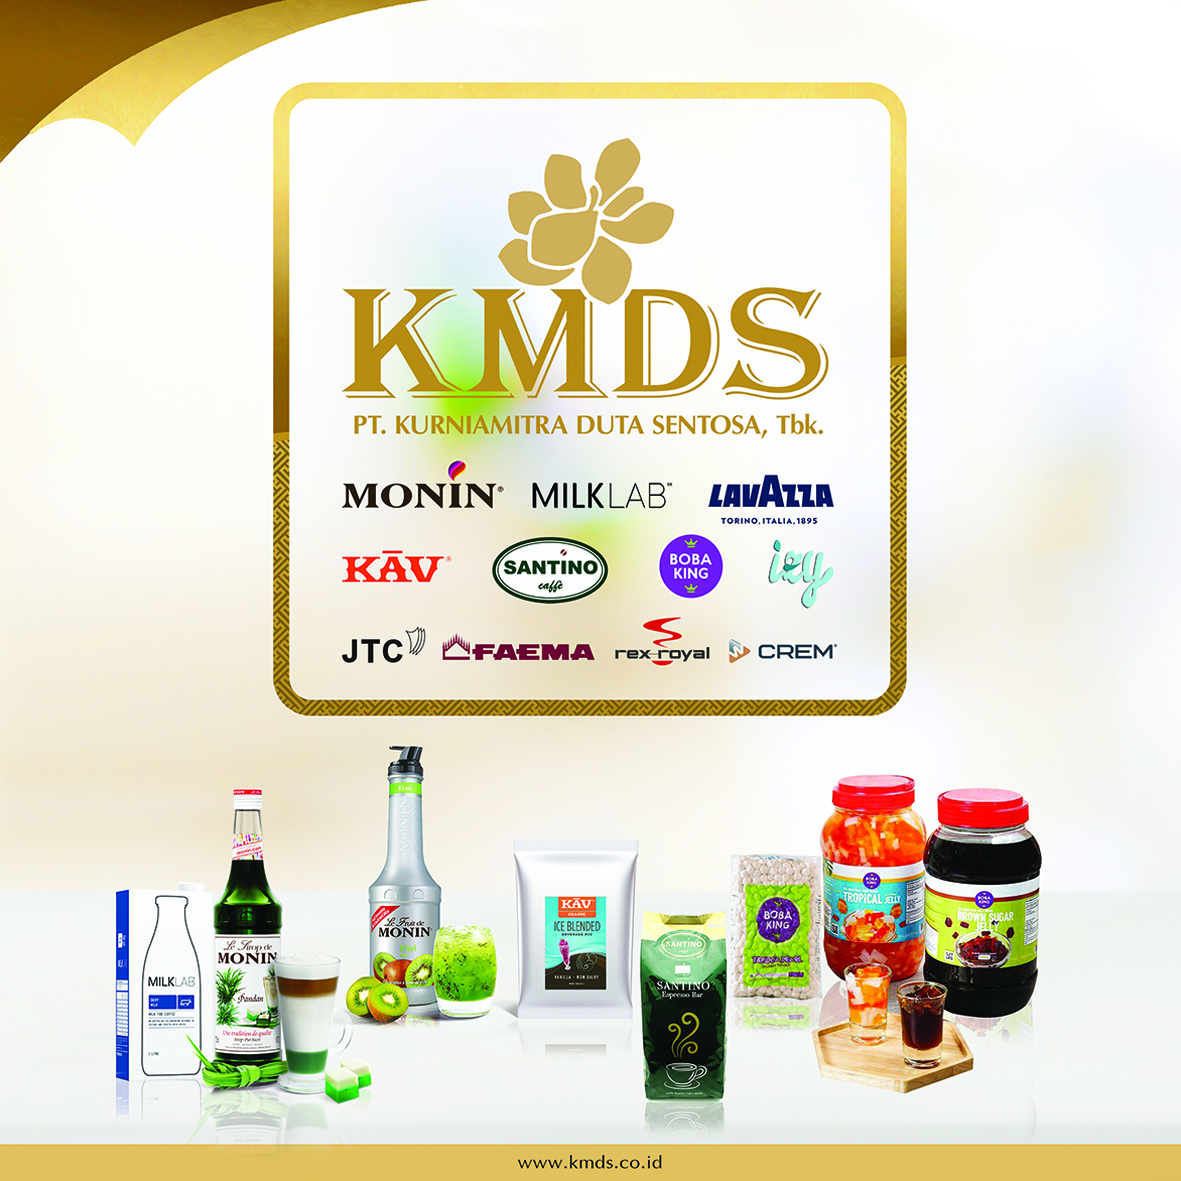 Welcome to www.kmds.co.id